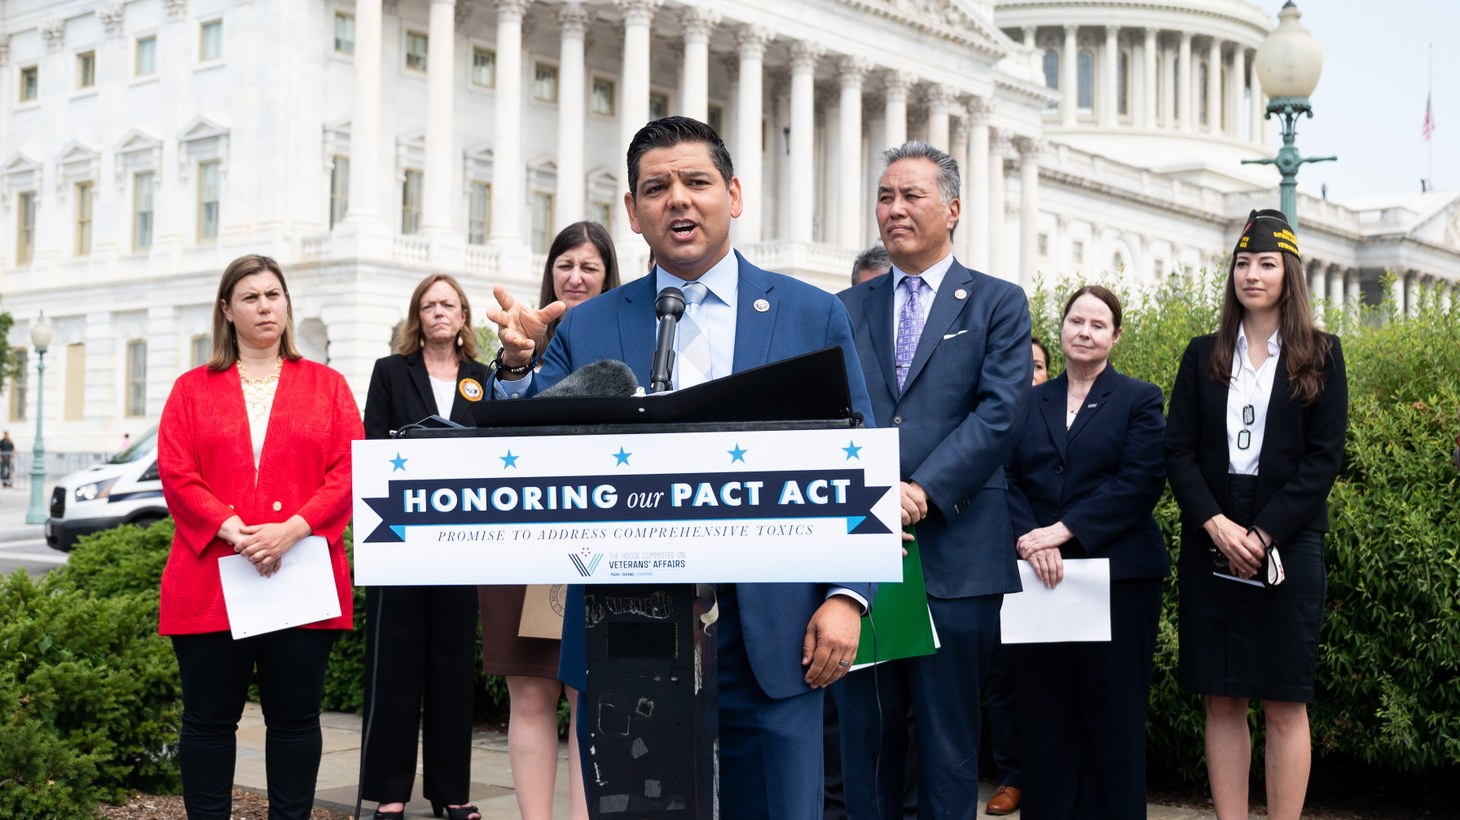 U.S. Representative Raul Ruiz (D-CA) speaking at a press conference to unveil legislation to help veterans exposed to toxic burn pits, May 26, 2021, Washington, DC, United States.